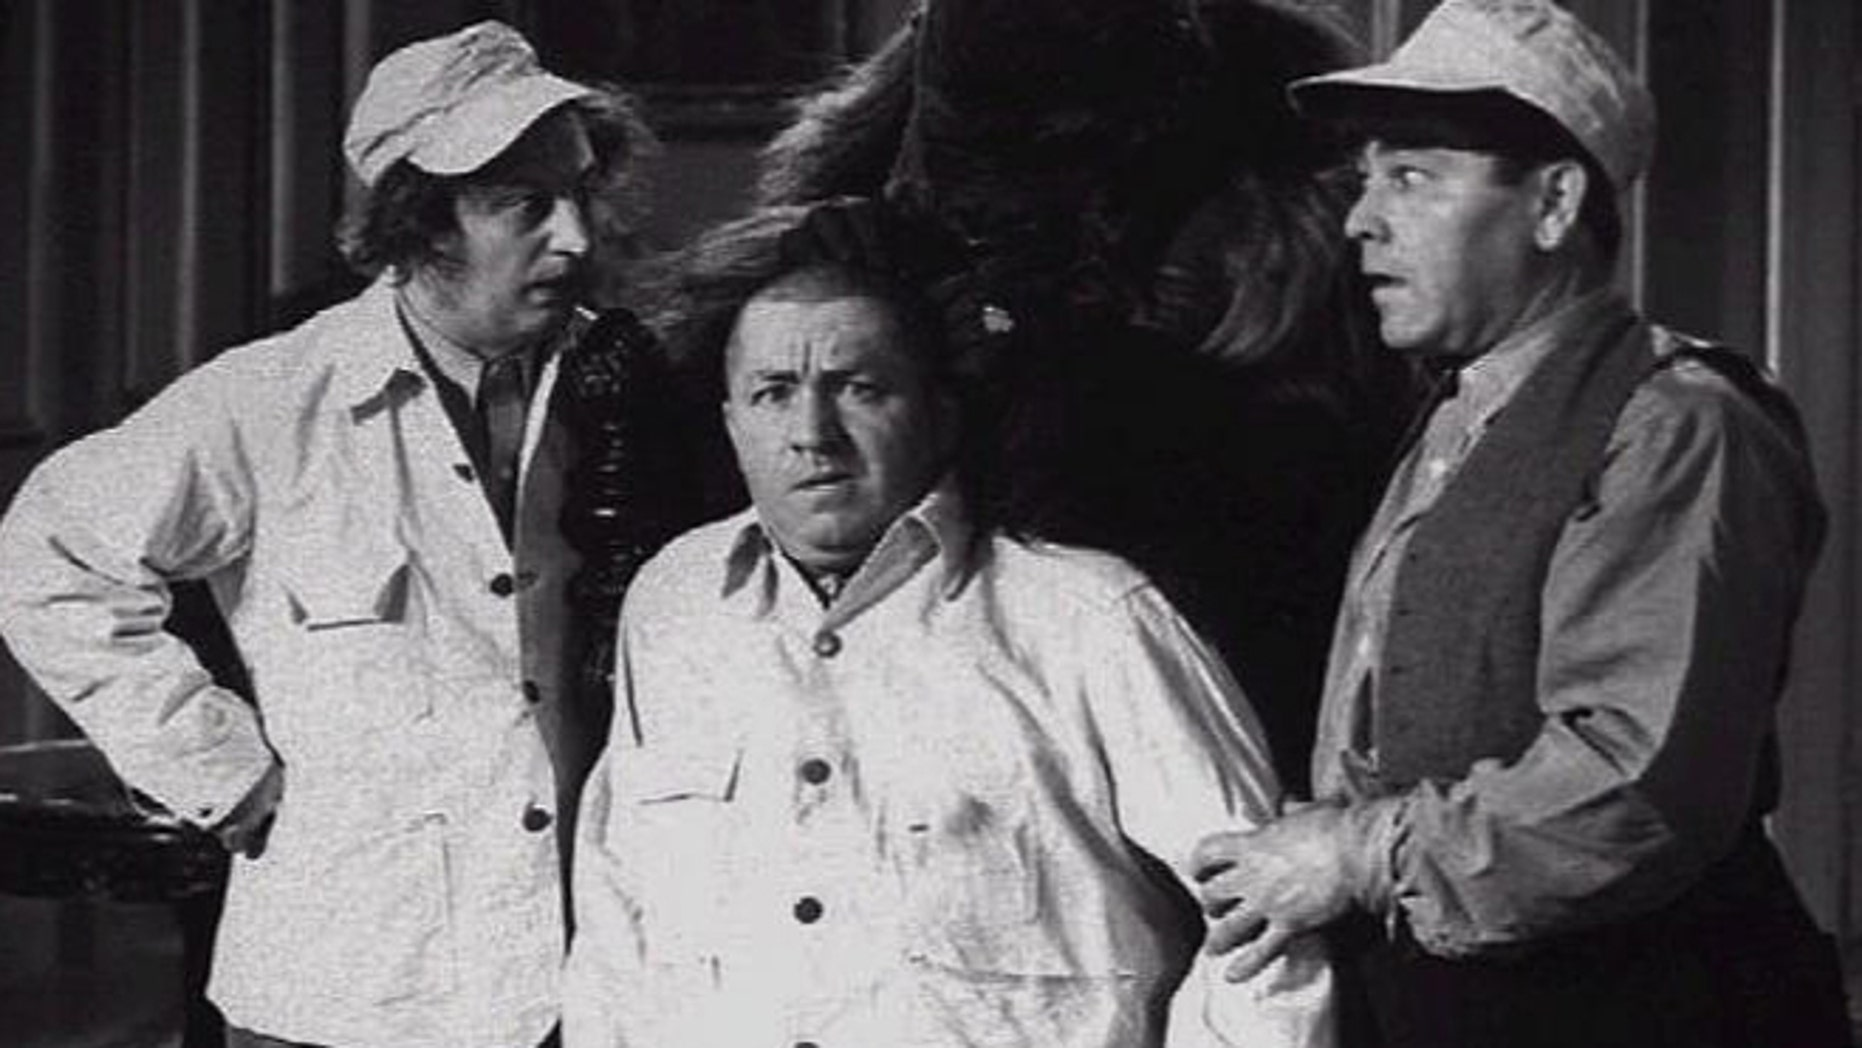 Larry Fine, Curly Jo De Rita, and Moe Howard in a scene from The Three Stooges movie.